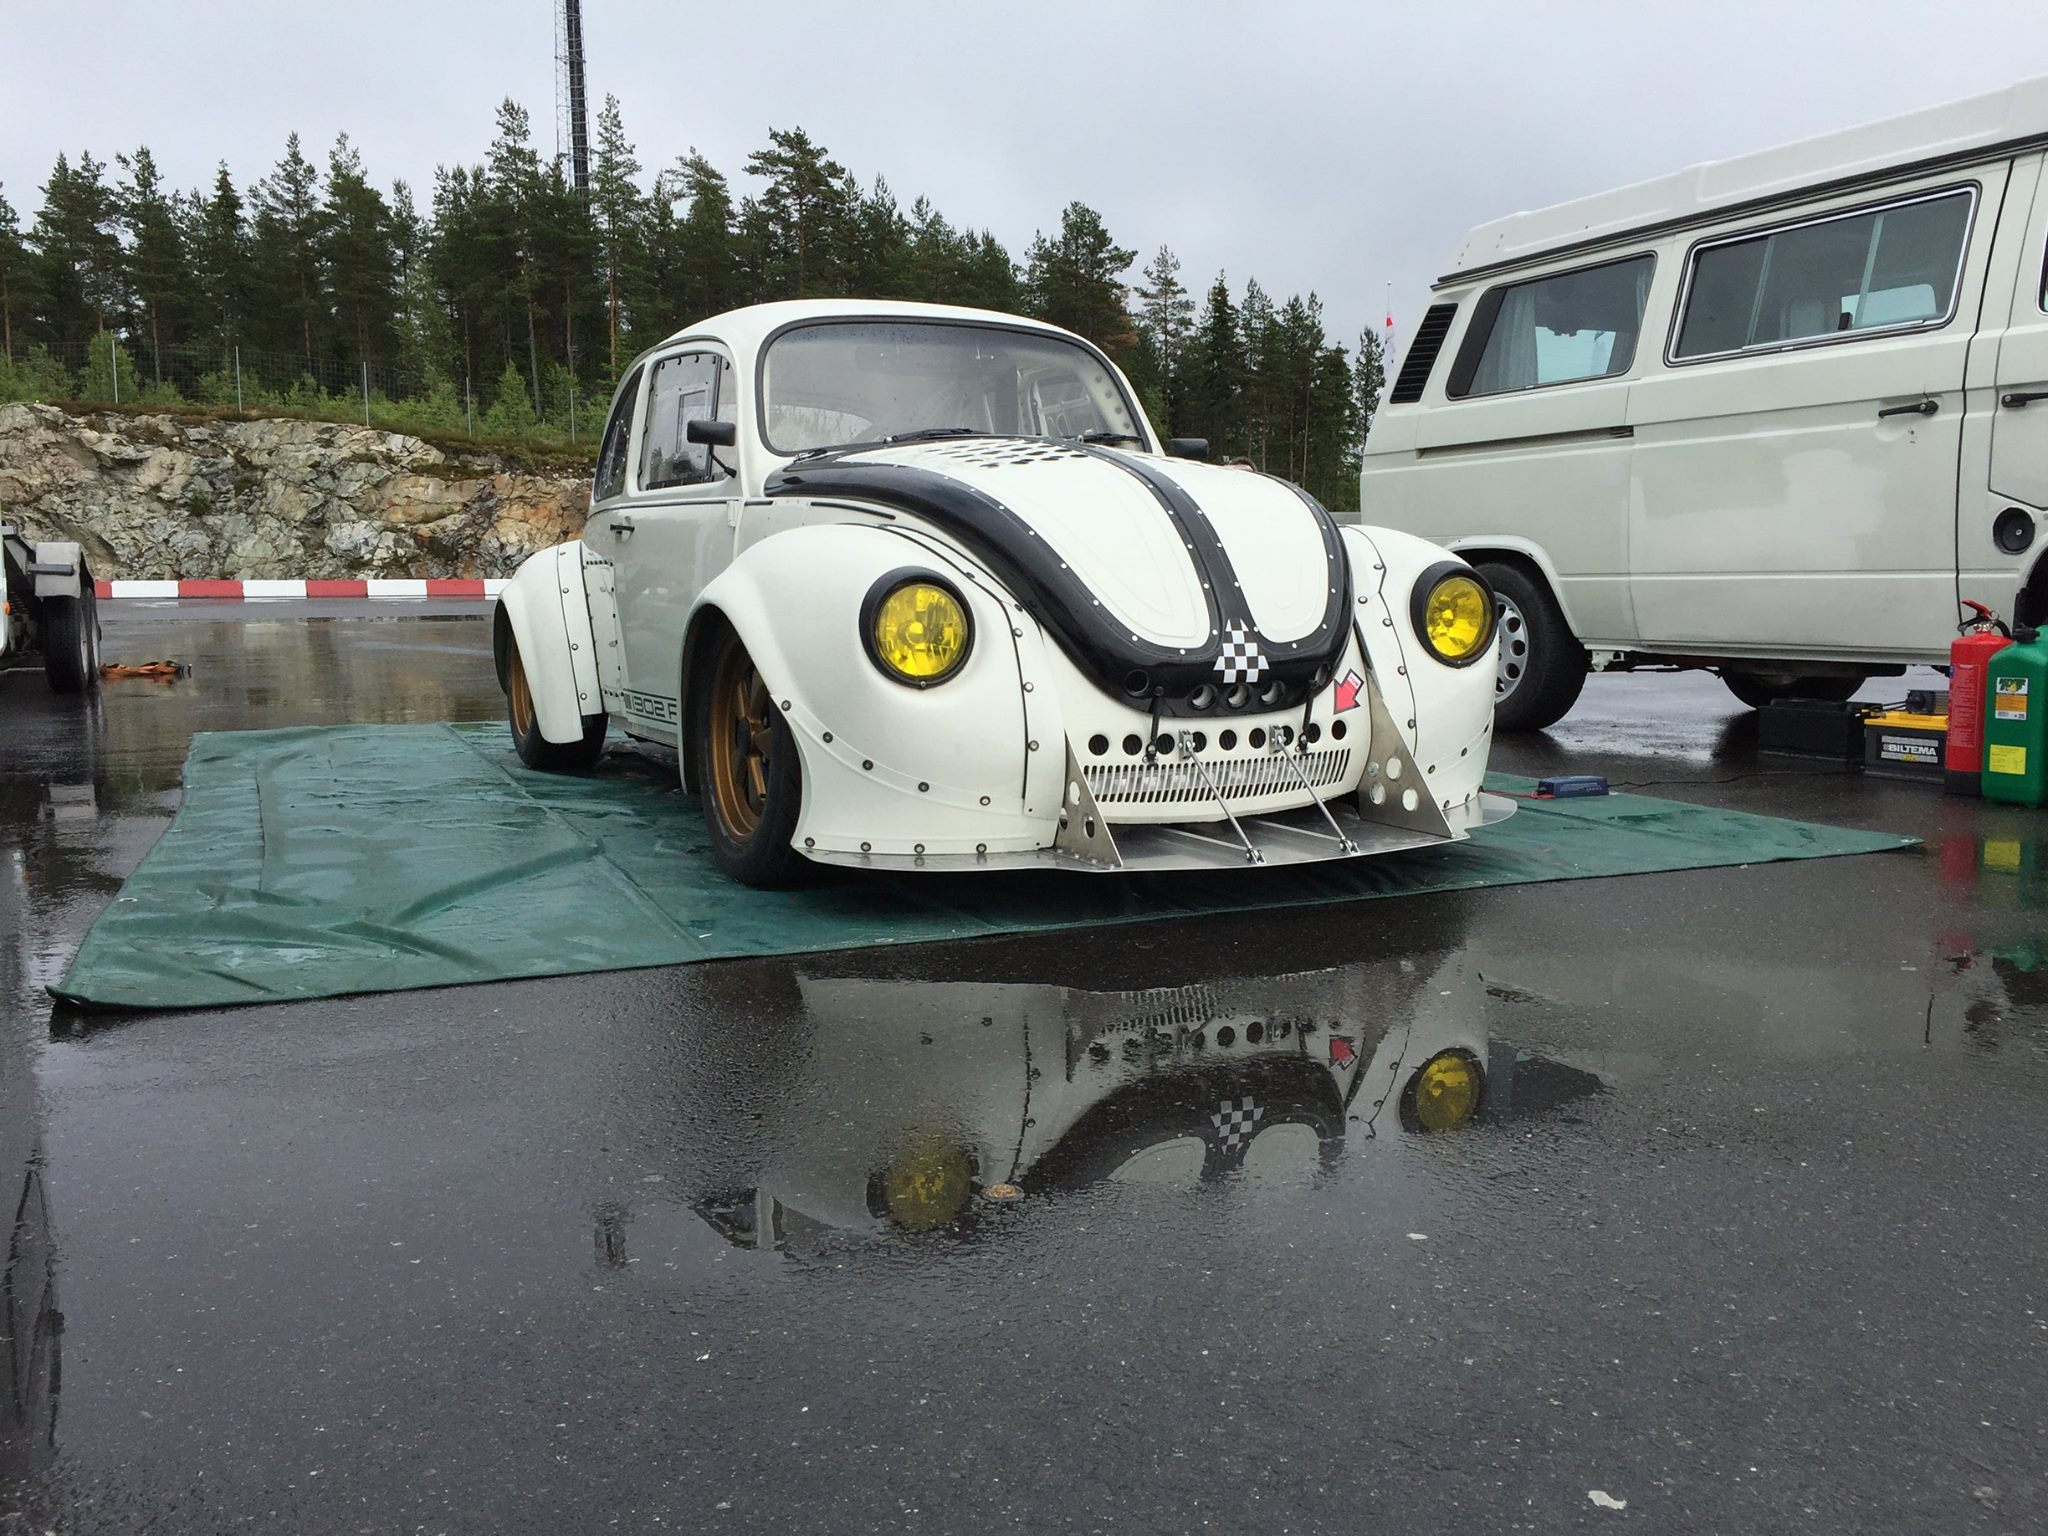 1971 Vw Beetle With A Honda Cbr1000rr Inline Four